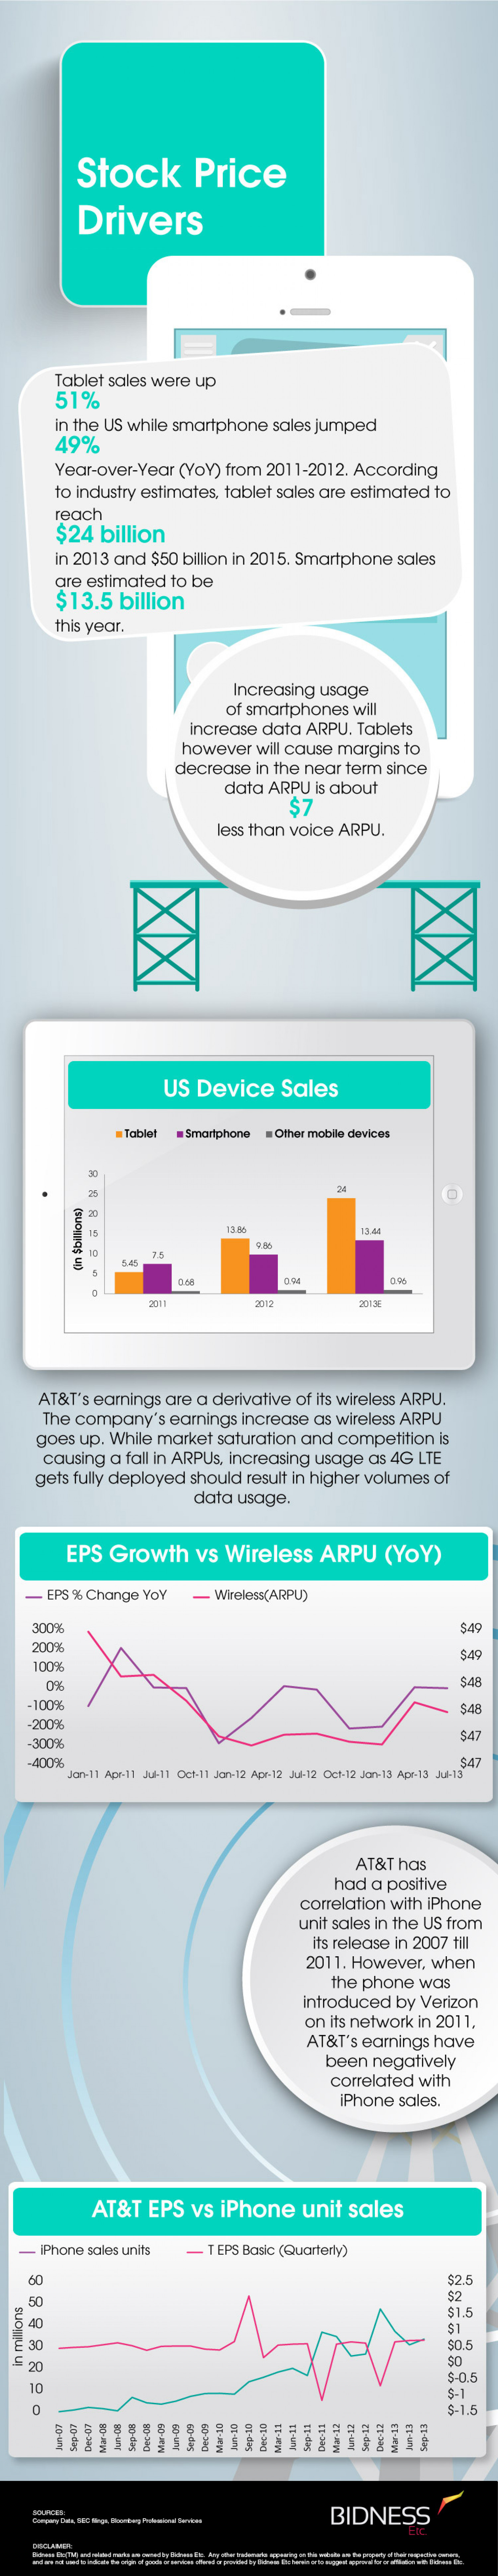 AT&T (T) Stock Price Drivers Infographic